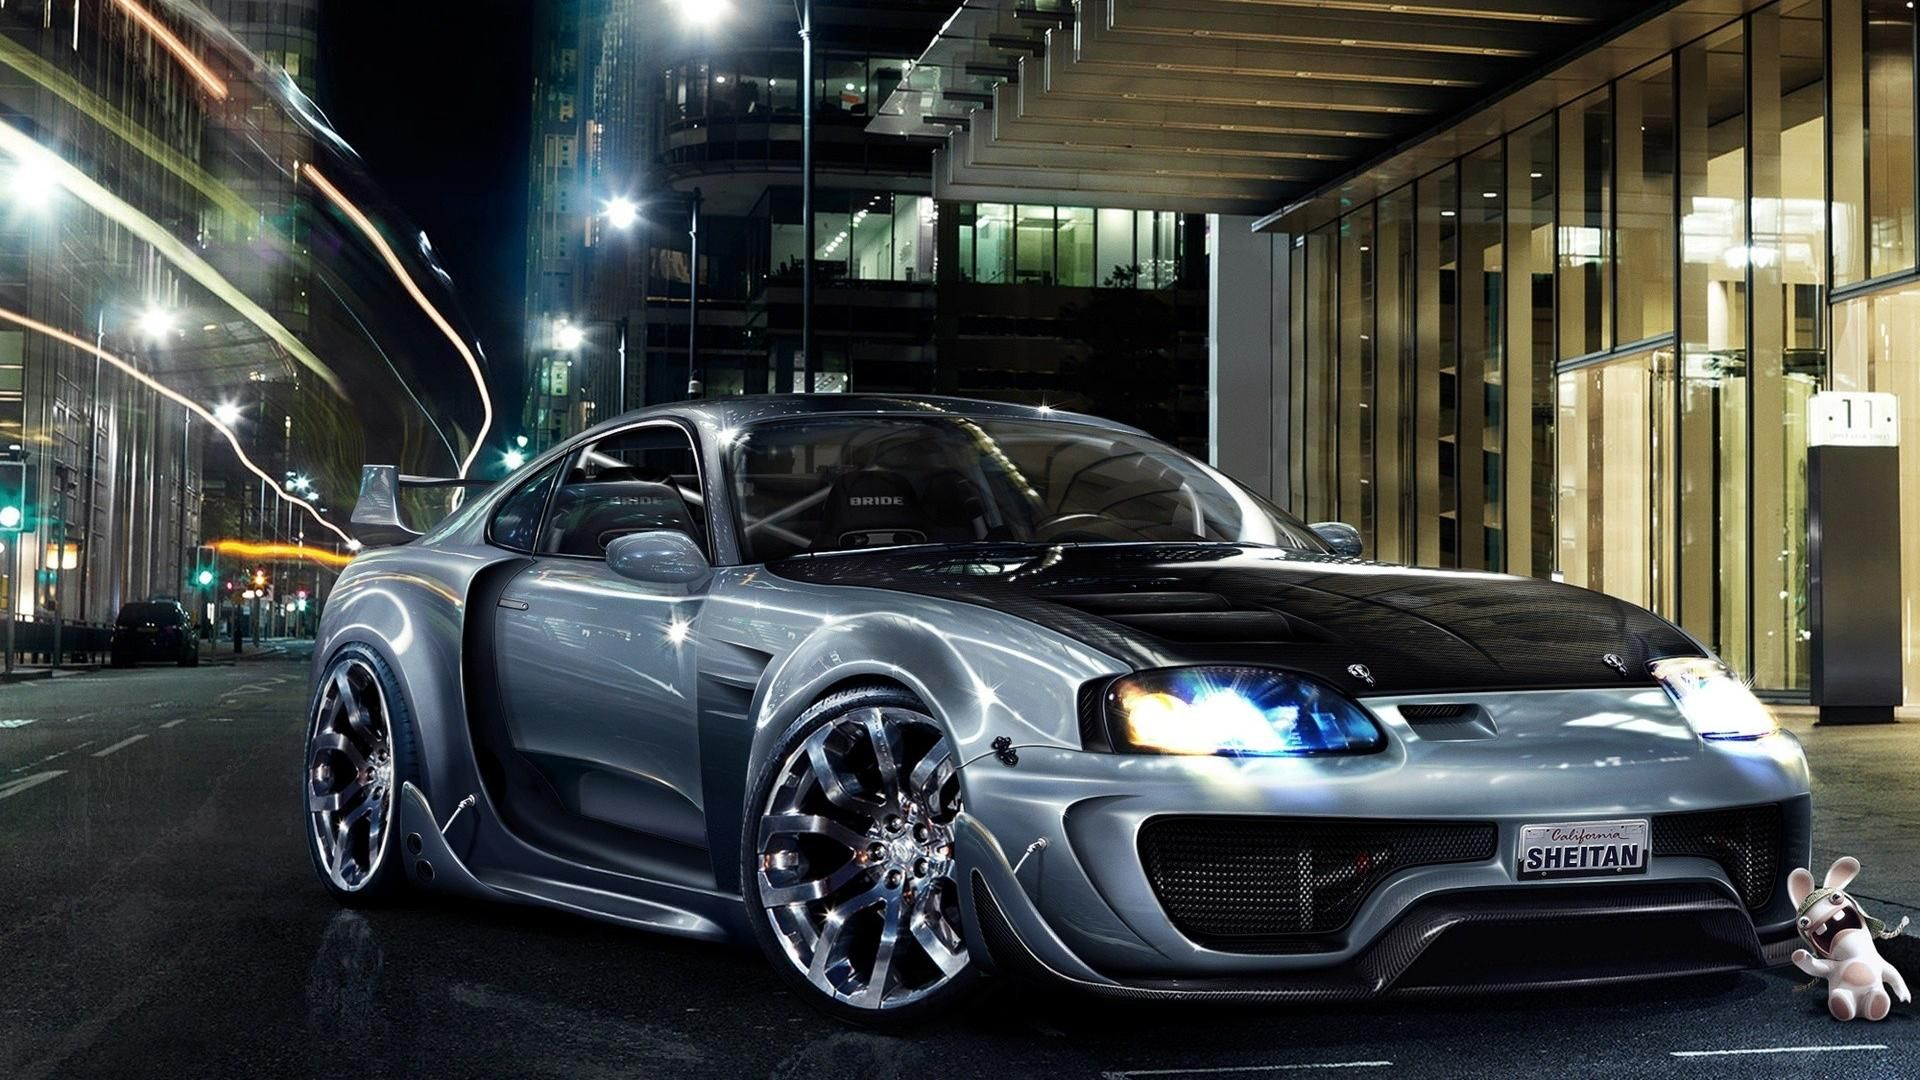 Pin By World Auto On My Wallpaper Collection Pinterest Cars